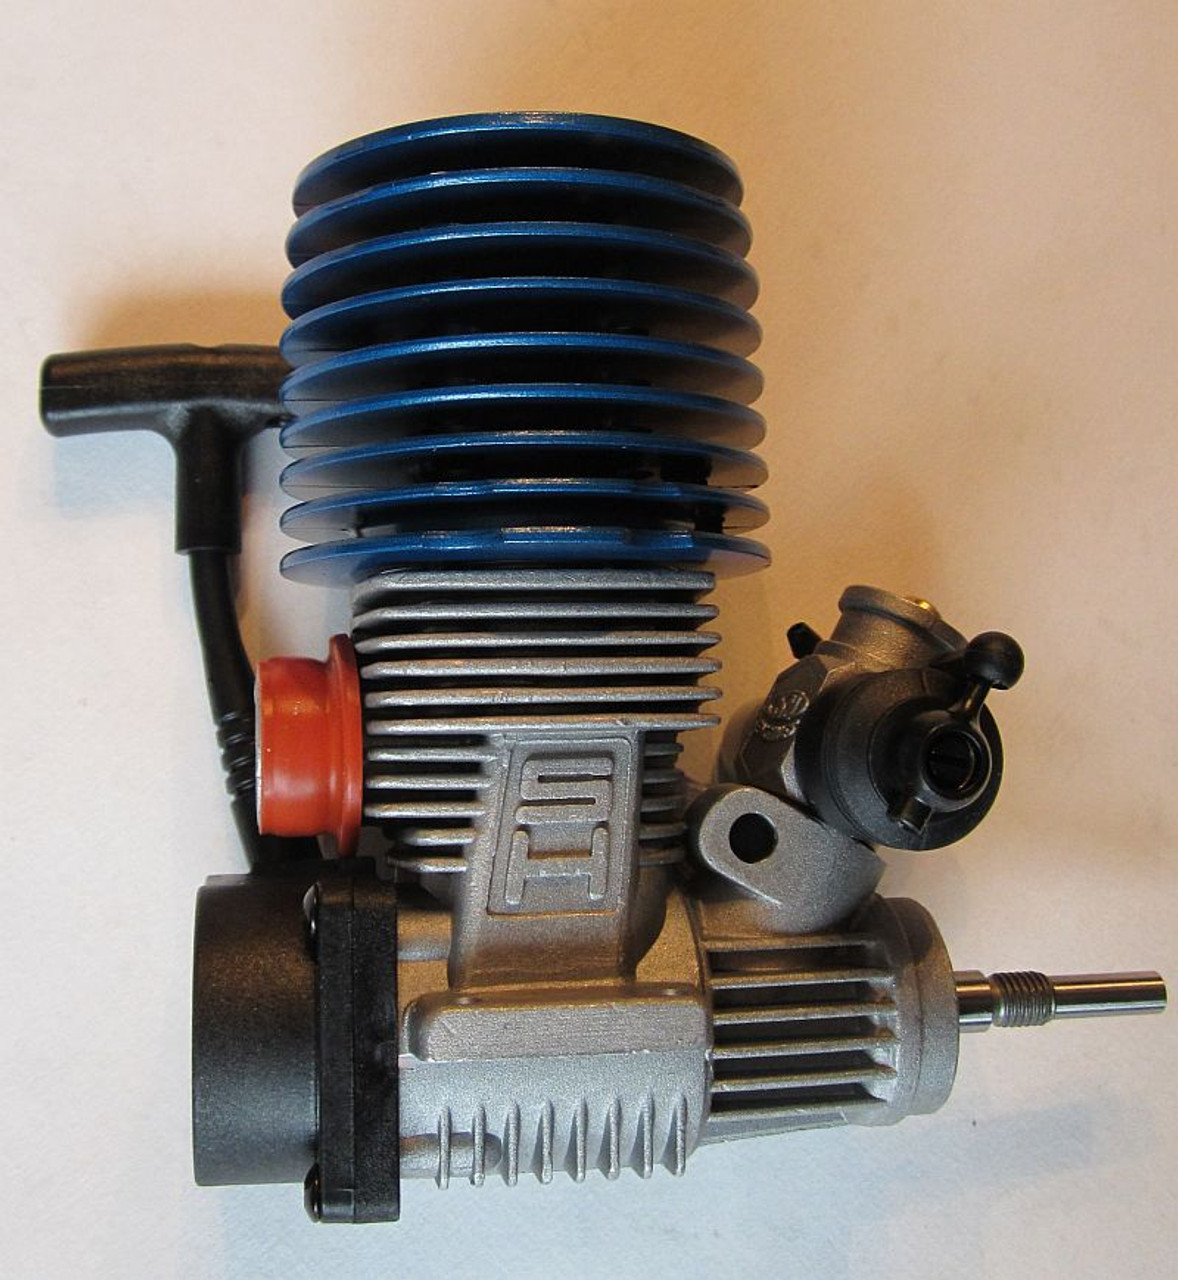 SH21 Nitro Engine for 1/8 Scale